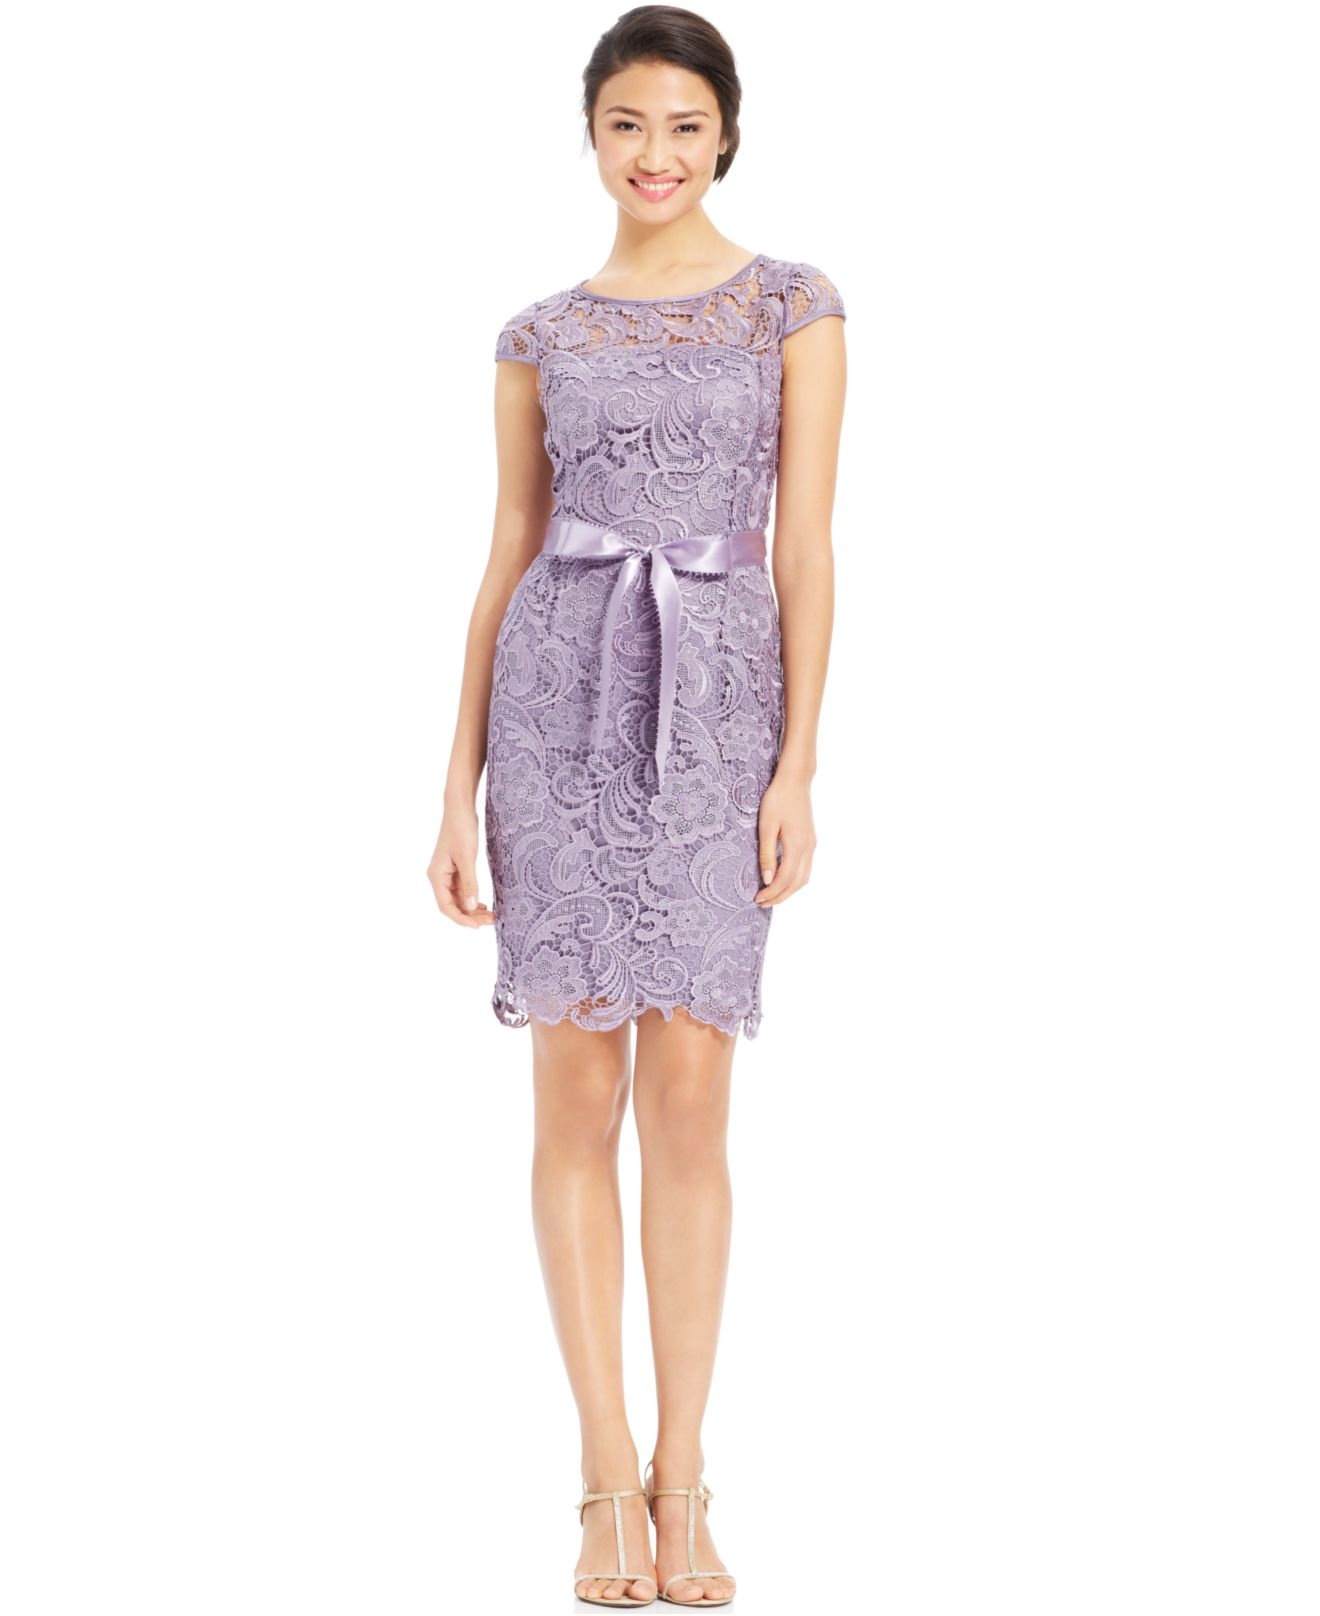 Lyst - Adrianna Papell Cap-Sleeve Illusion Lace Sheath in ...